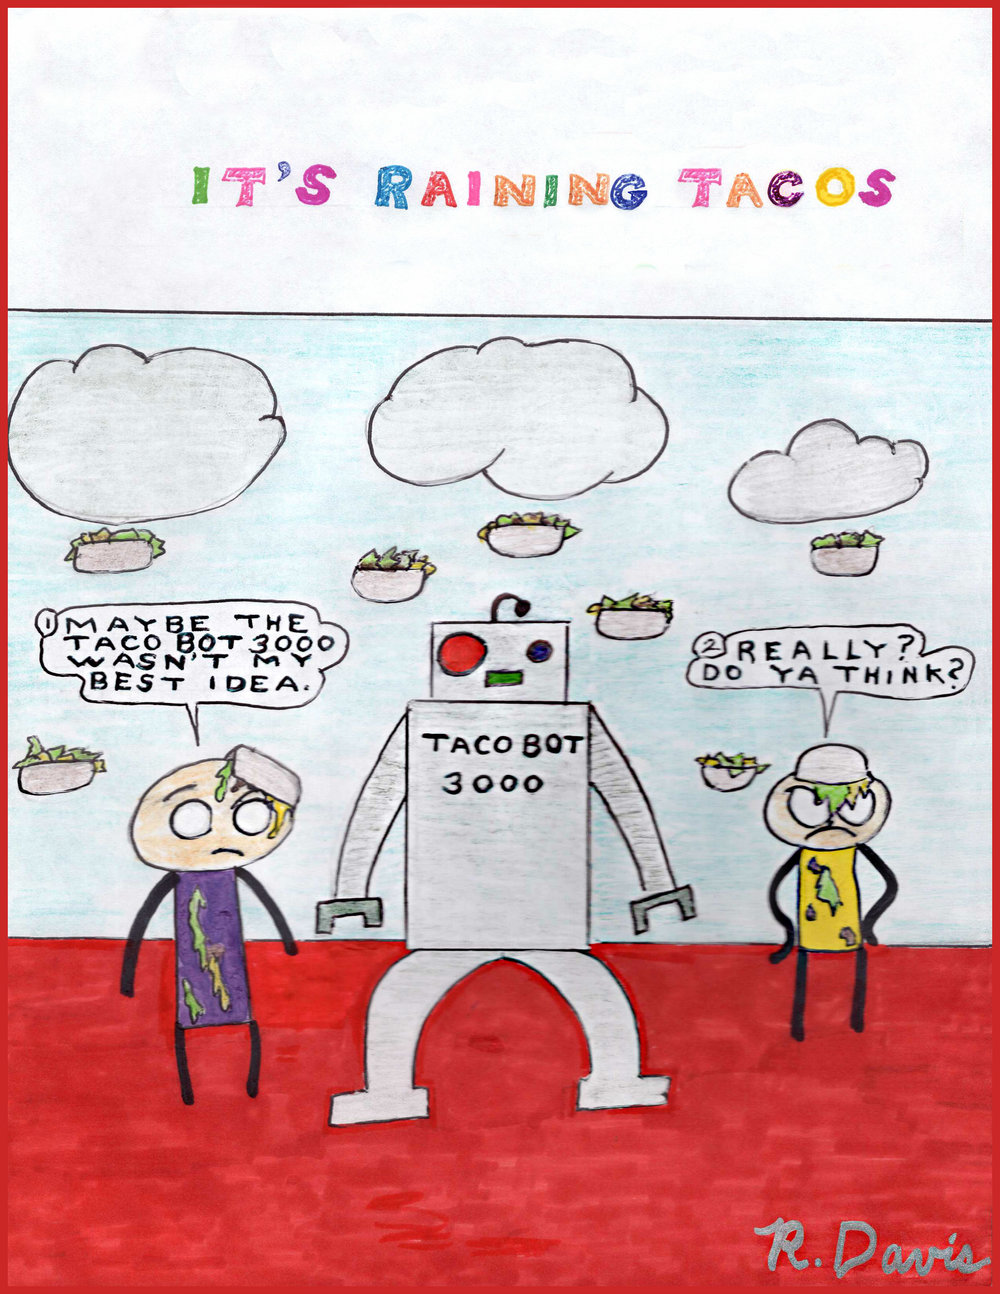 It's Raining Tacos Ron Davis 2017 Pencil and marker on paper Print $20